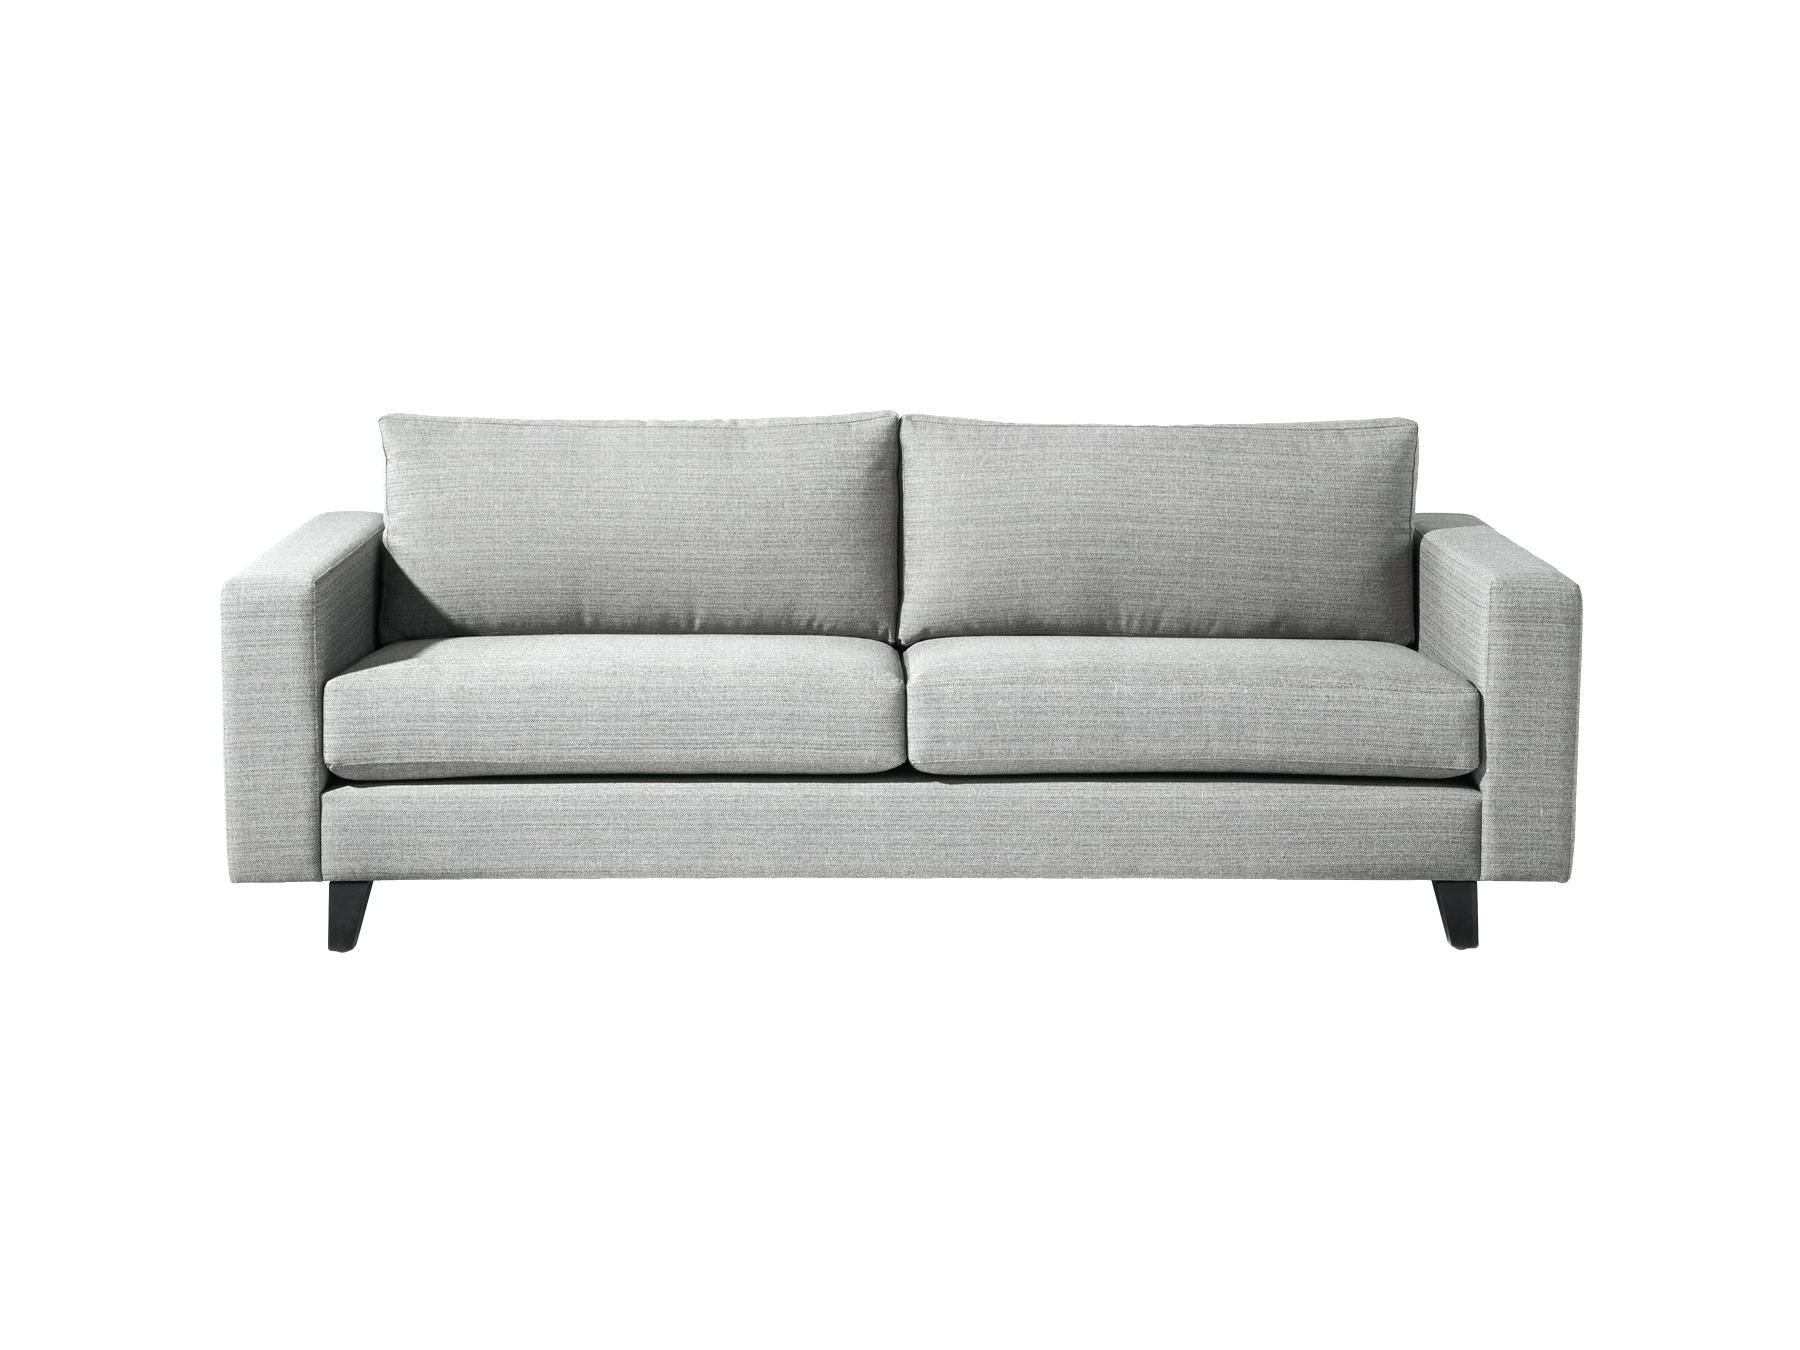 Jordans Sectional Sofas Regarding Well Liked Jordans Furniture Couches Sectional Sofawolf And – 4Parkar (View 11 of 15)